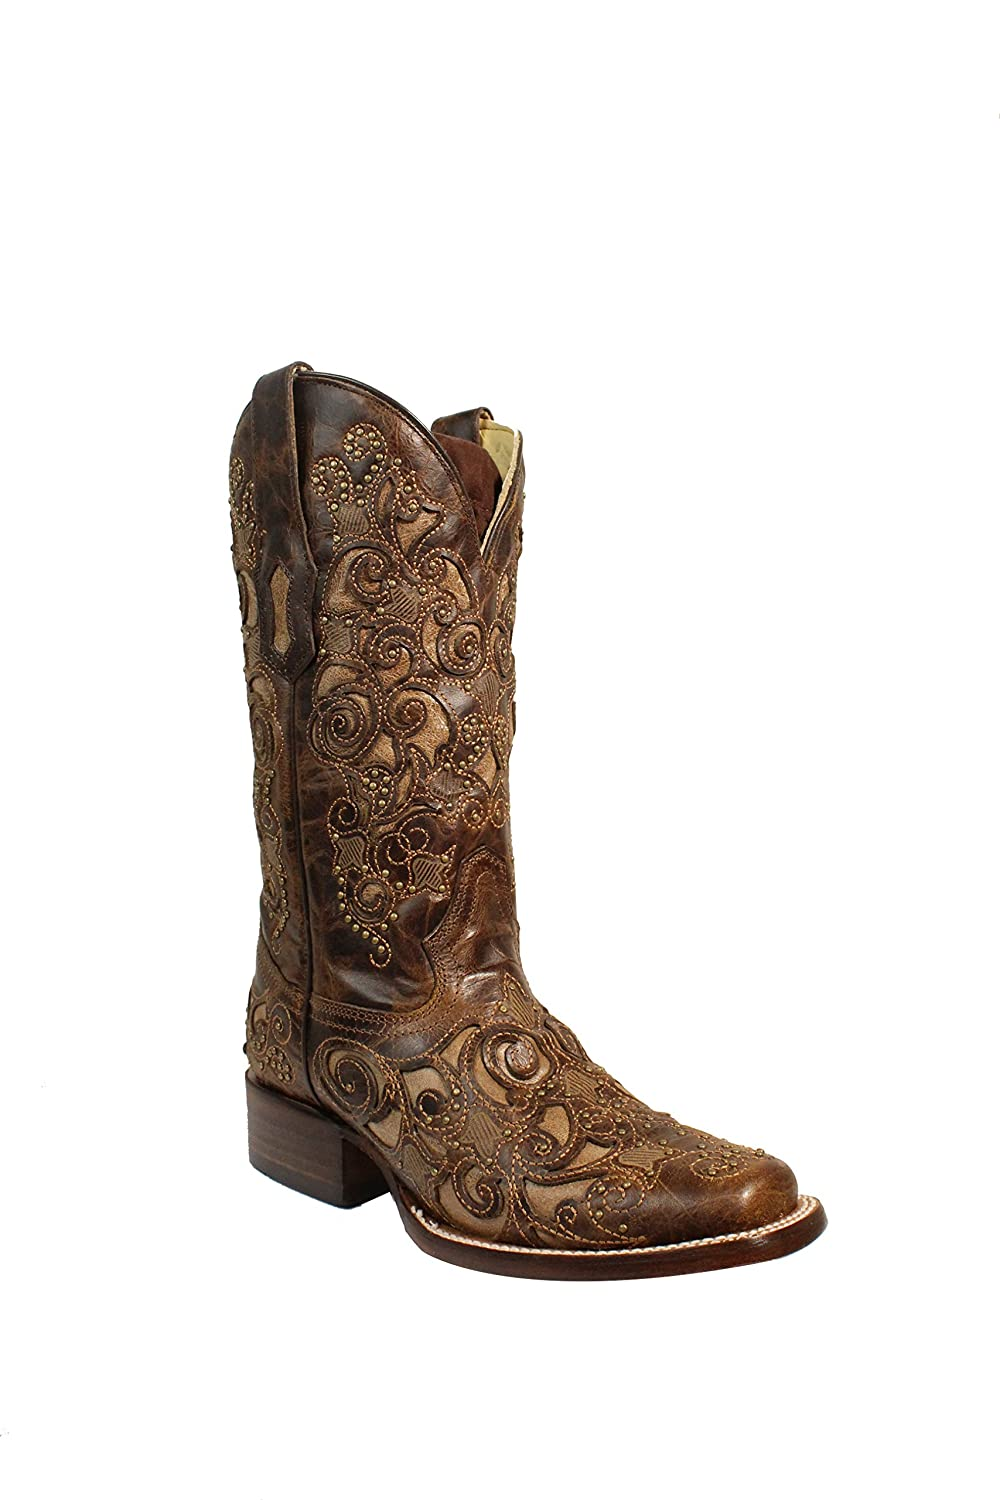 9ad1c79f767 Amazon.com | Corral Women's Brown Inlay & Studs with Embroidery ...